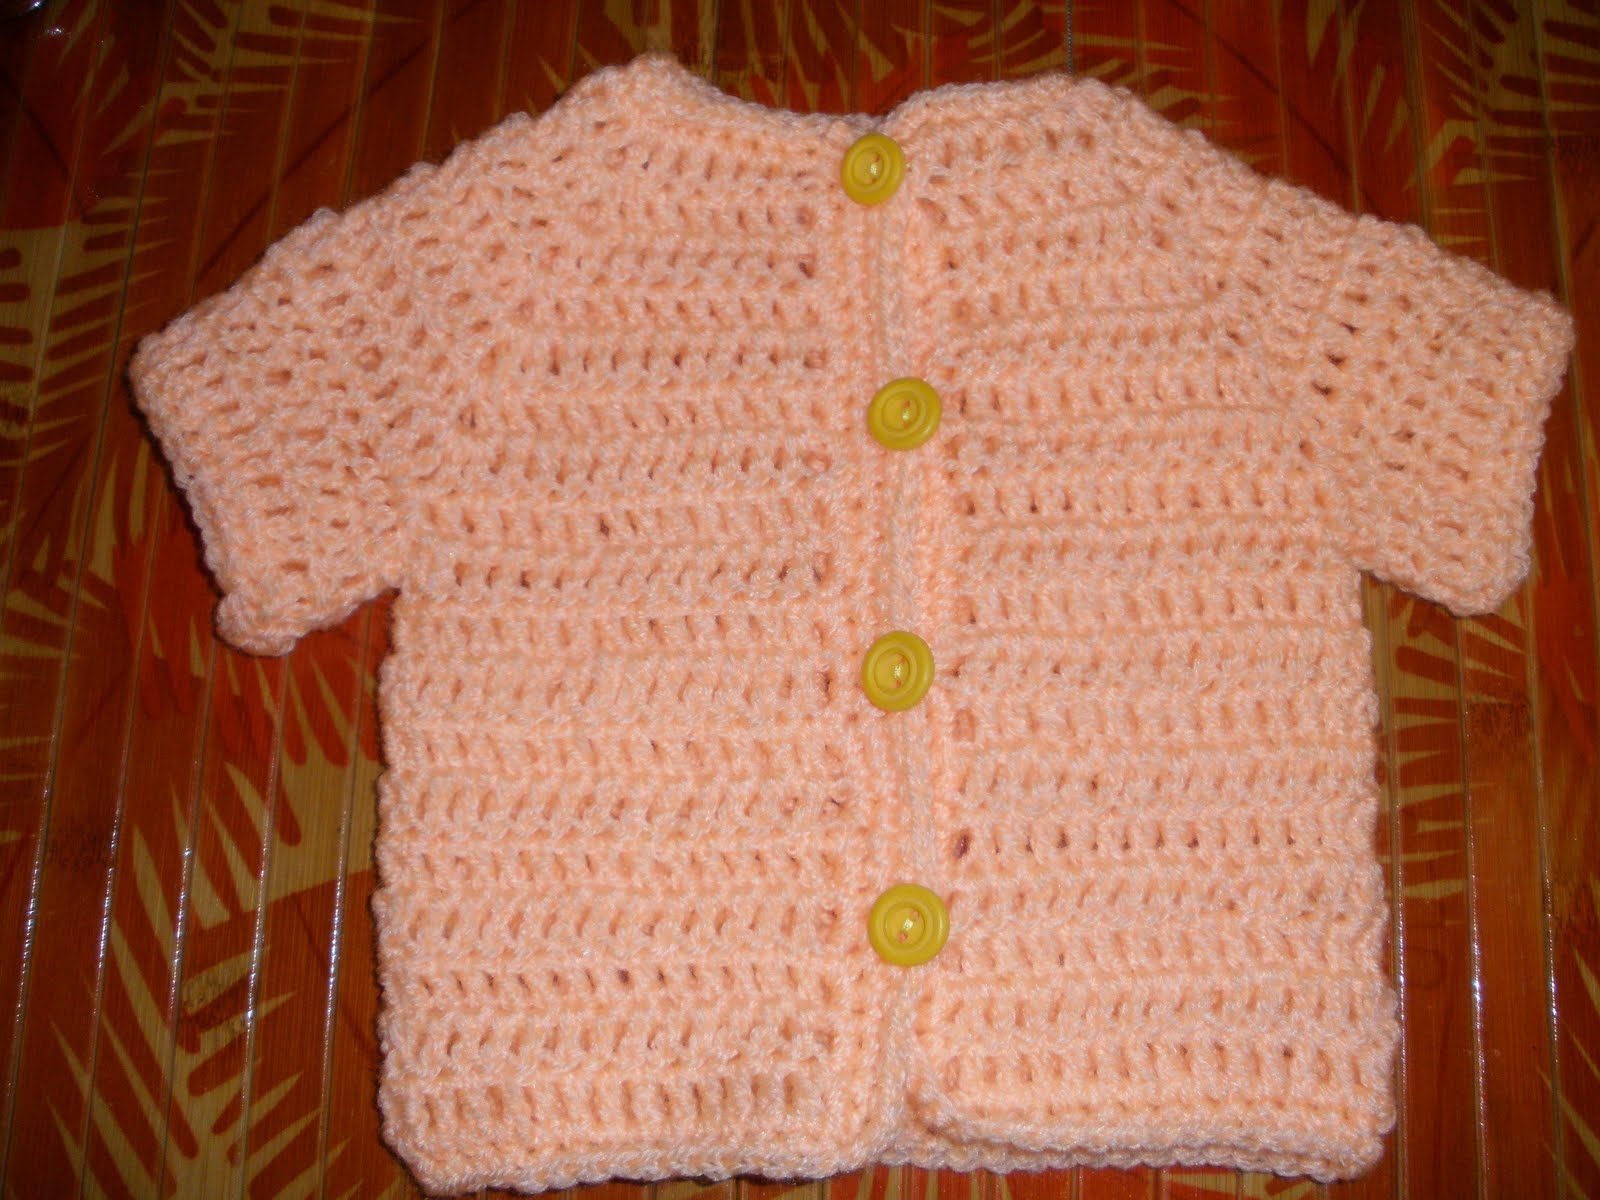 Crocheting T Shirts : Rose Garden Crochet: Crochet T-shirt & Pants